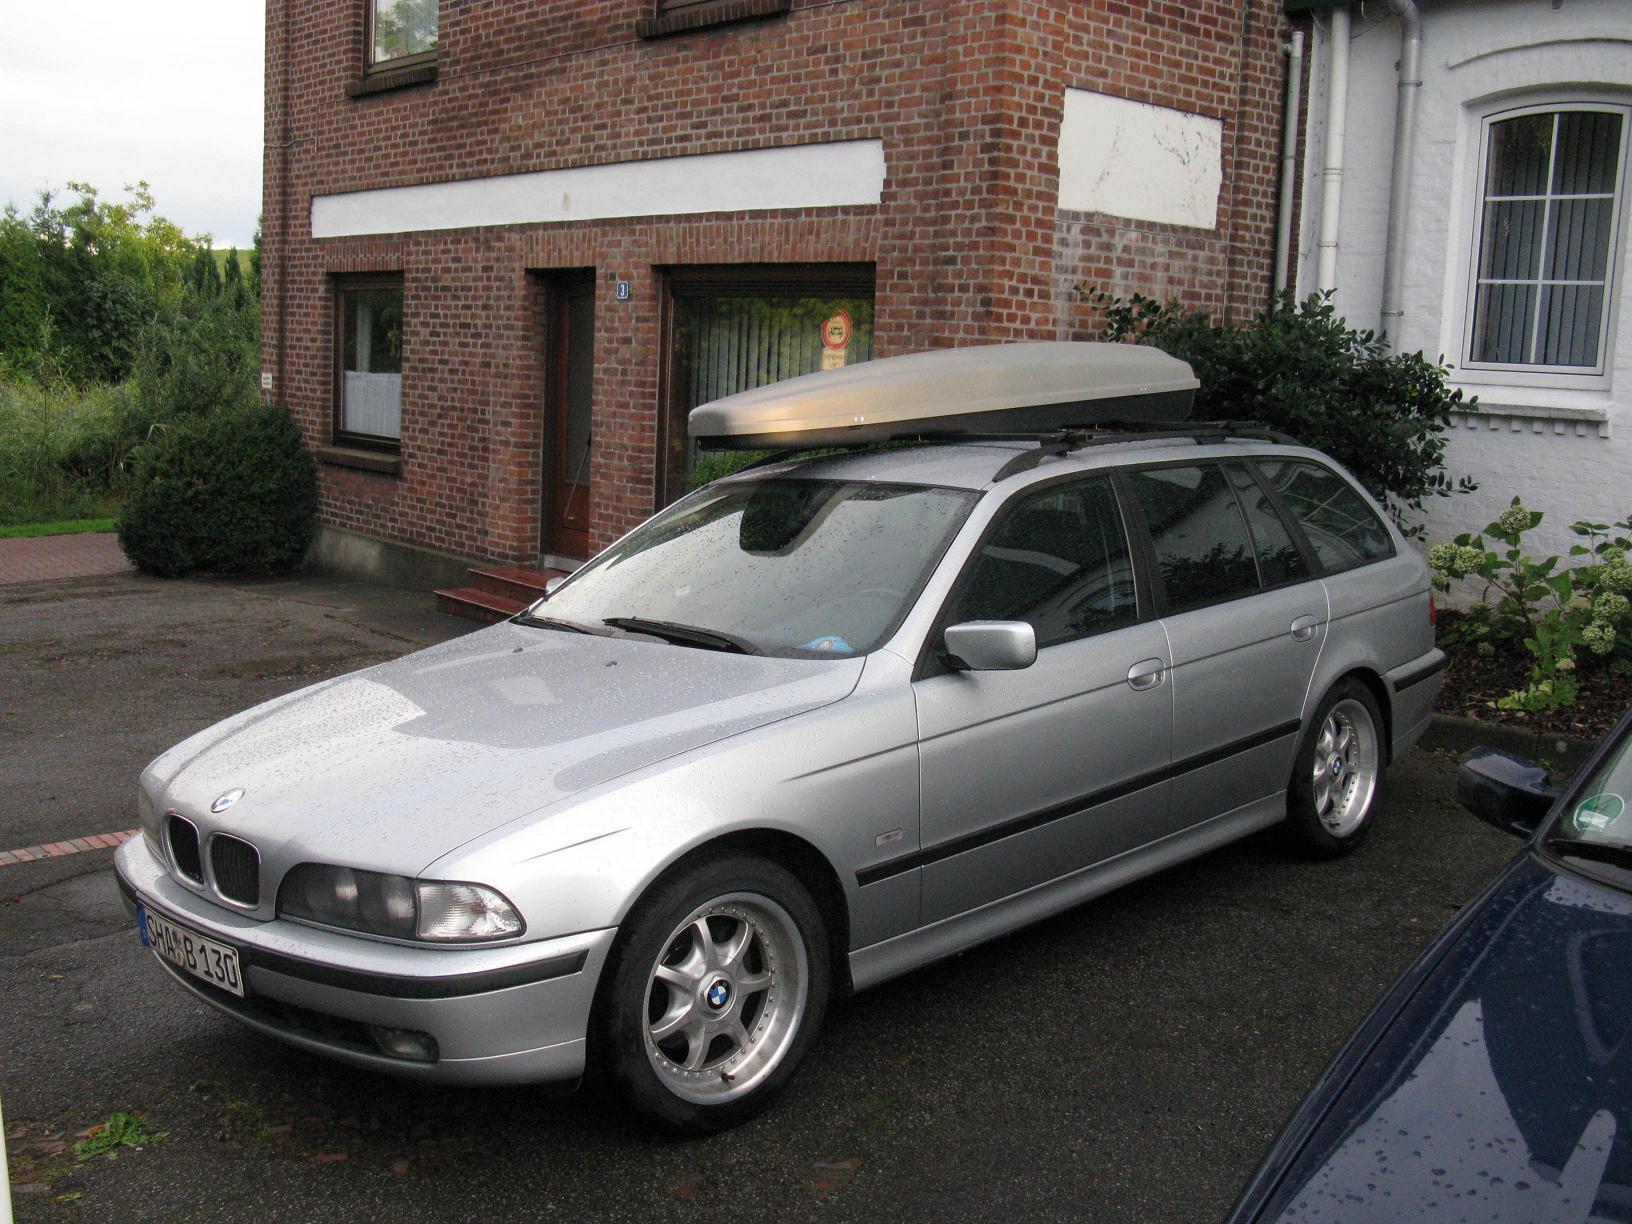 BMW 5 Series E39 Touring | Flickr - Photo Sharing!